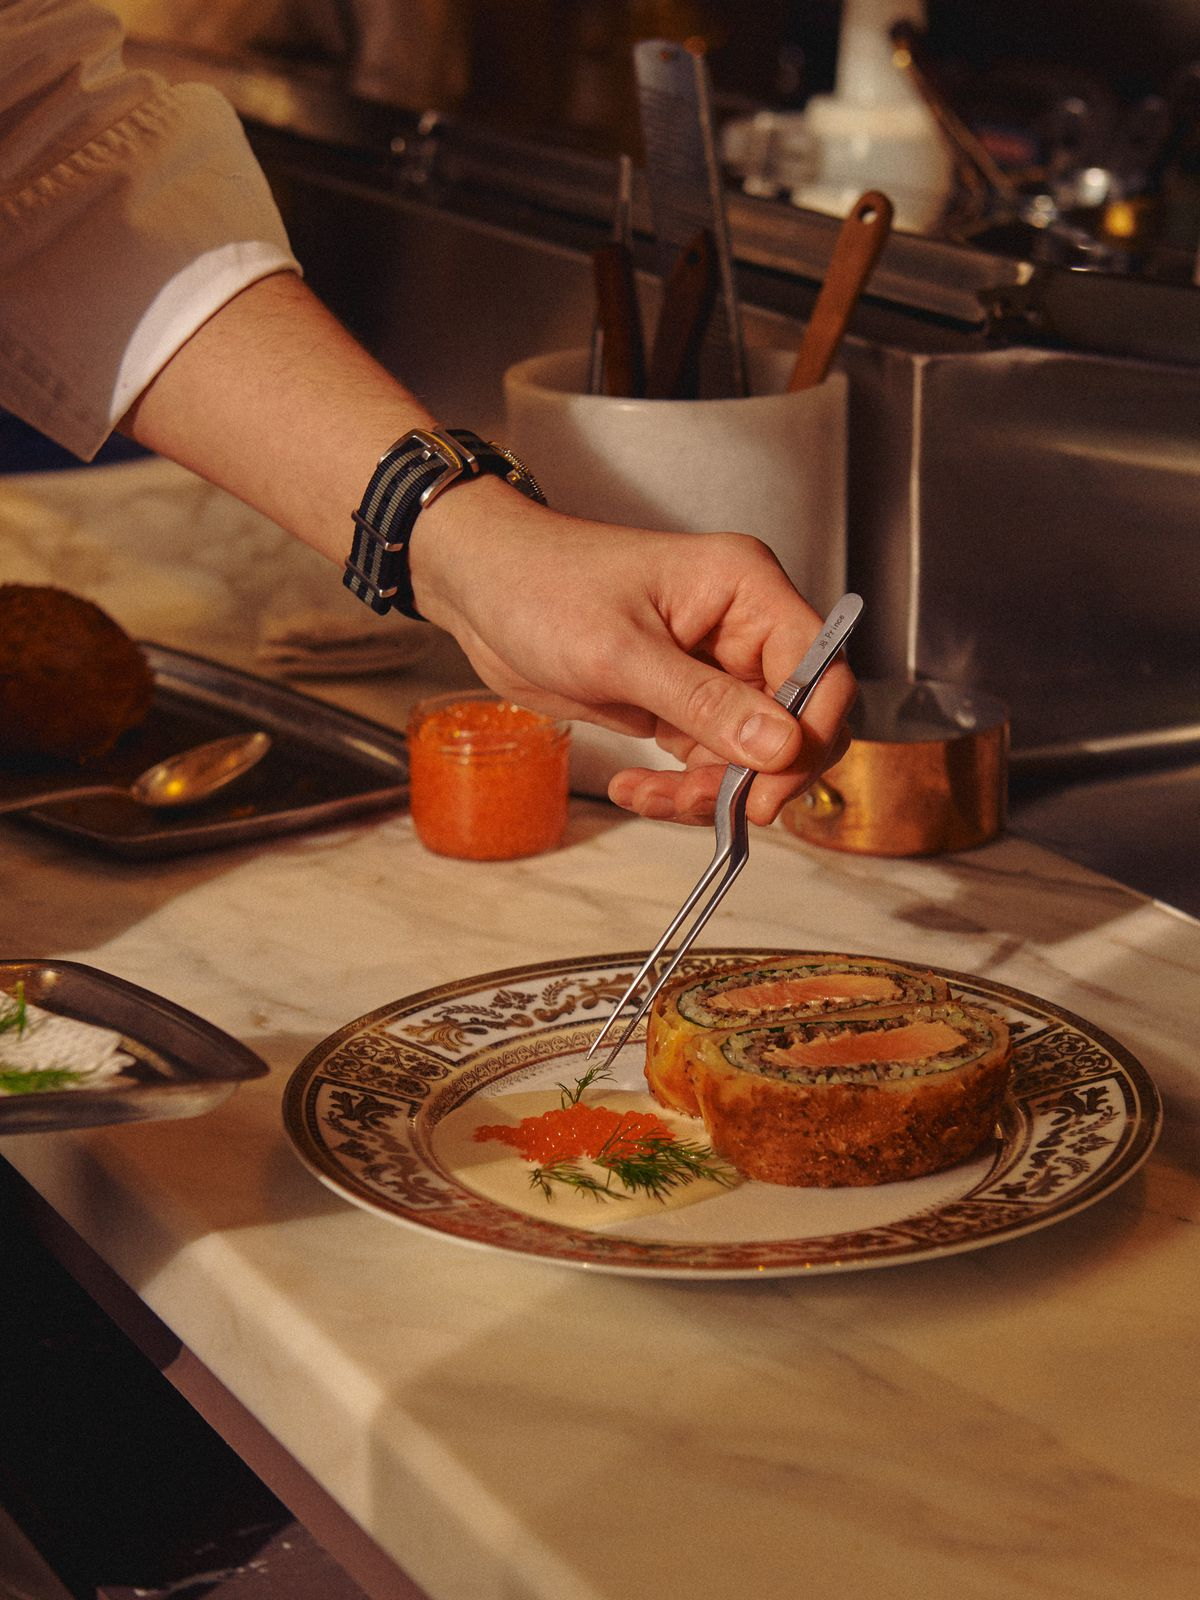 A hand uses tweezers to put dill onto an ornate plate with Russian fish pie.